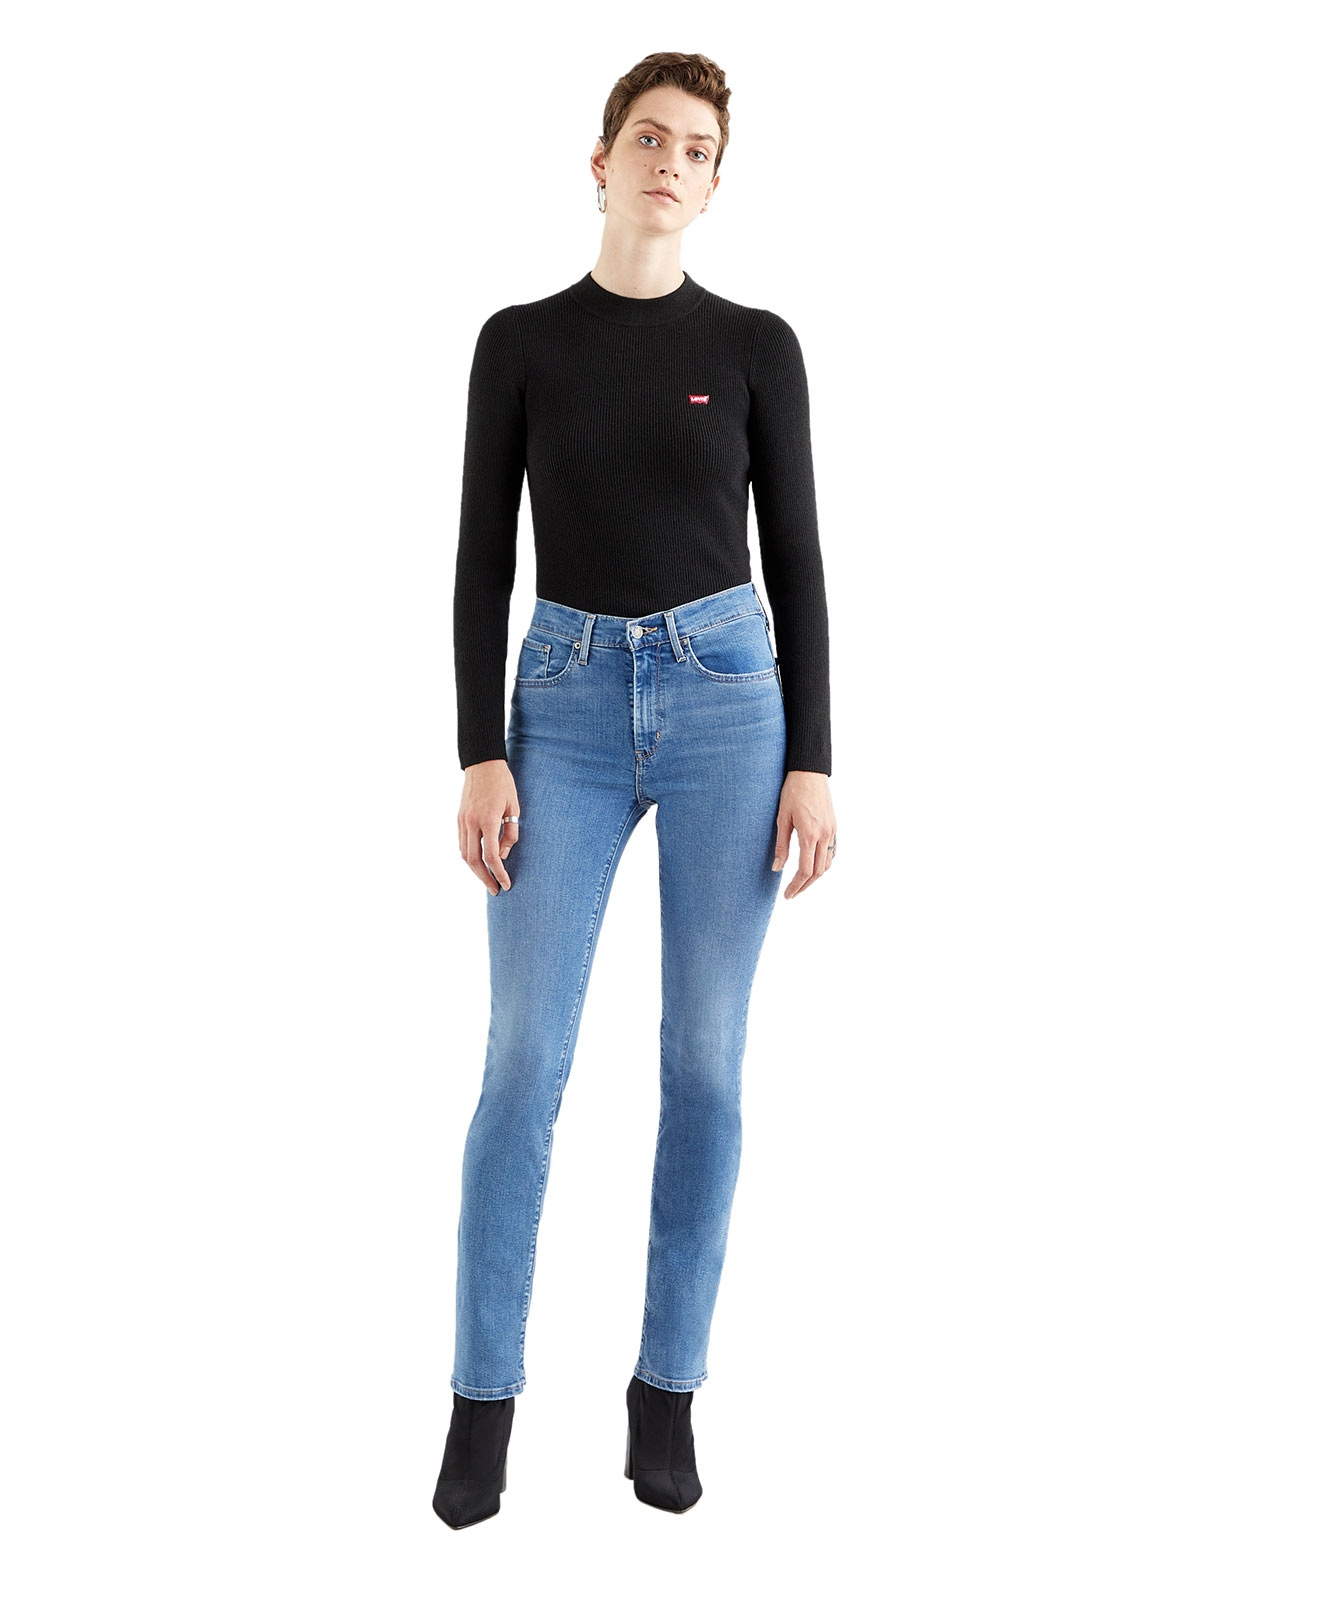 Hosen - Levis High Waisted Jeans 724 in Rio Frost  - Onlineshop Jeans Meile